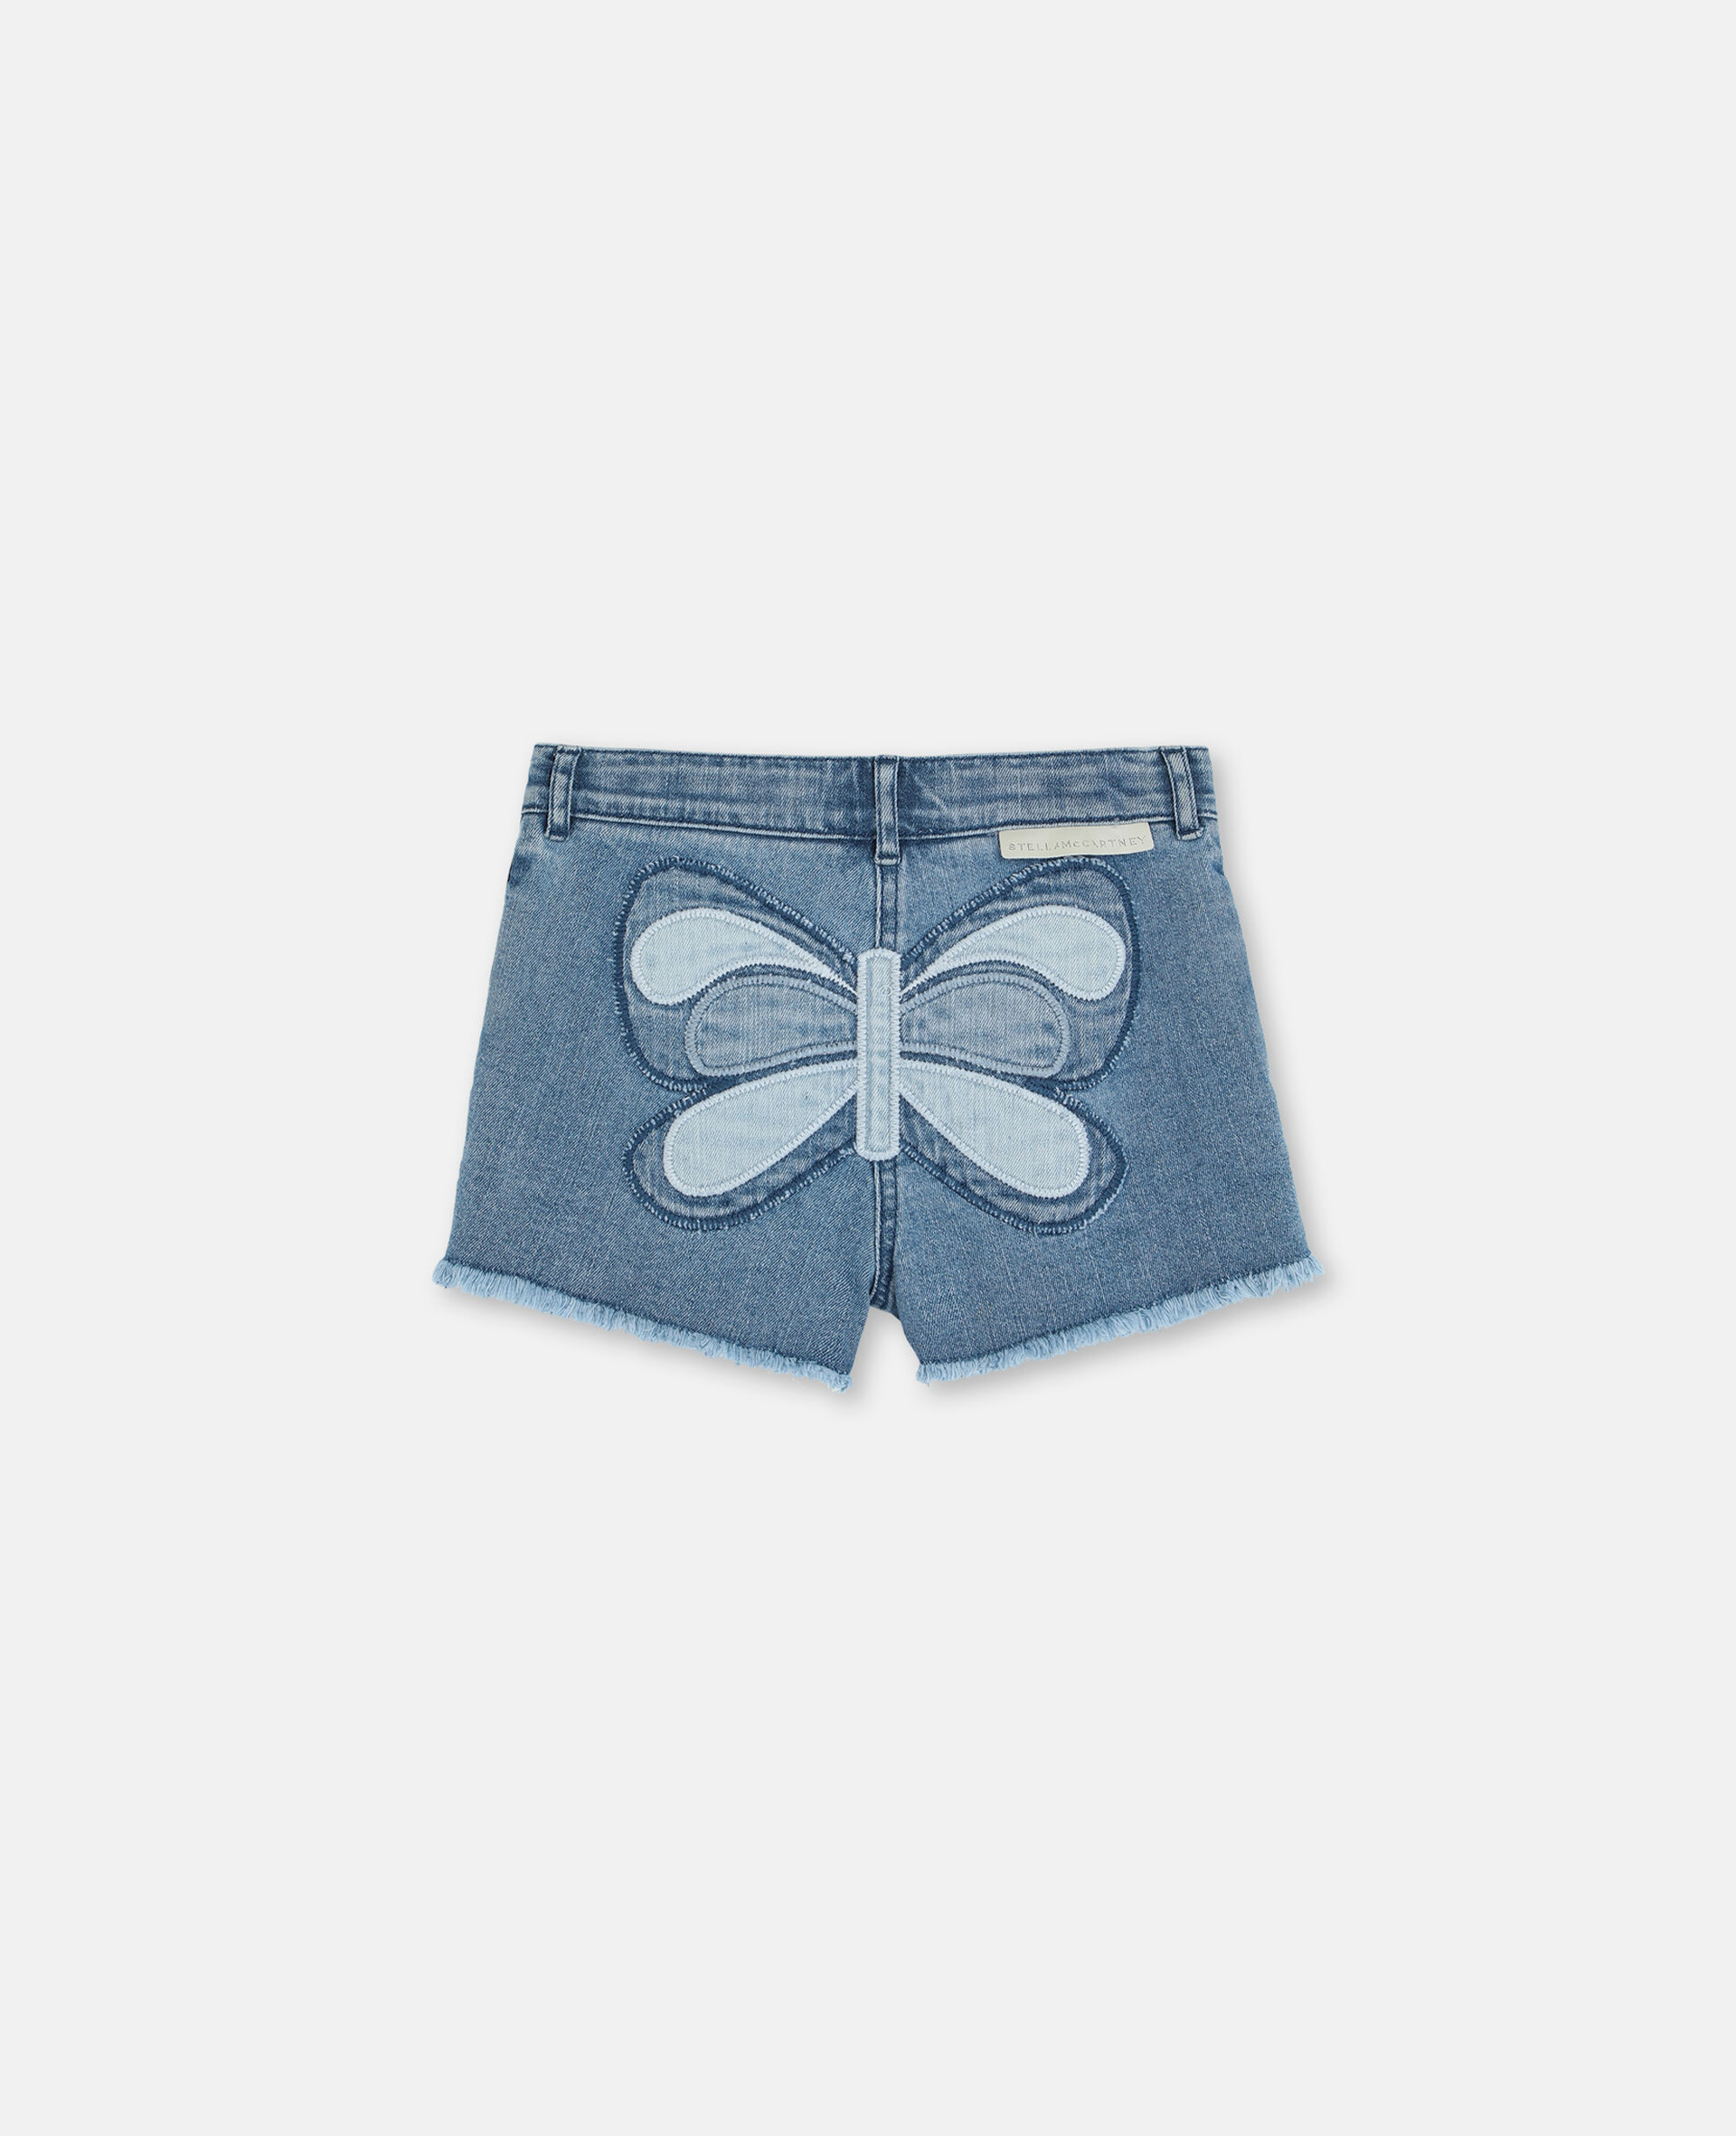 Butterfly Patch Denim Shorts -Blue-large image number 3